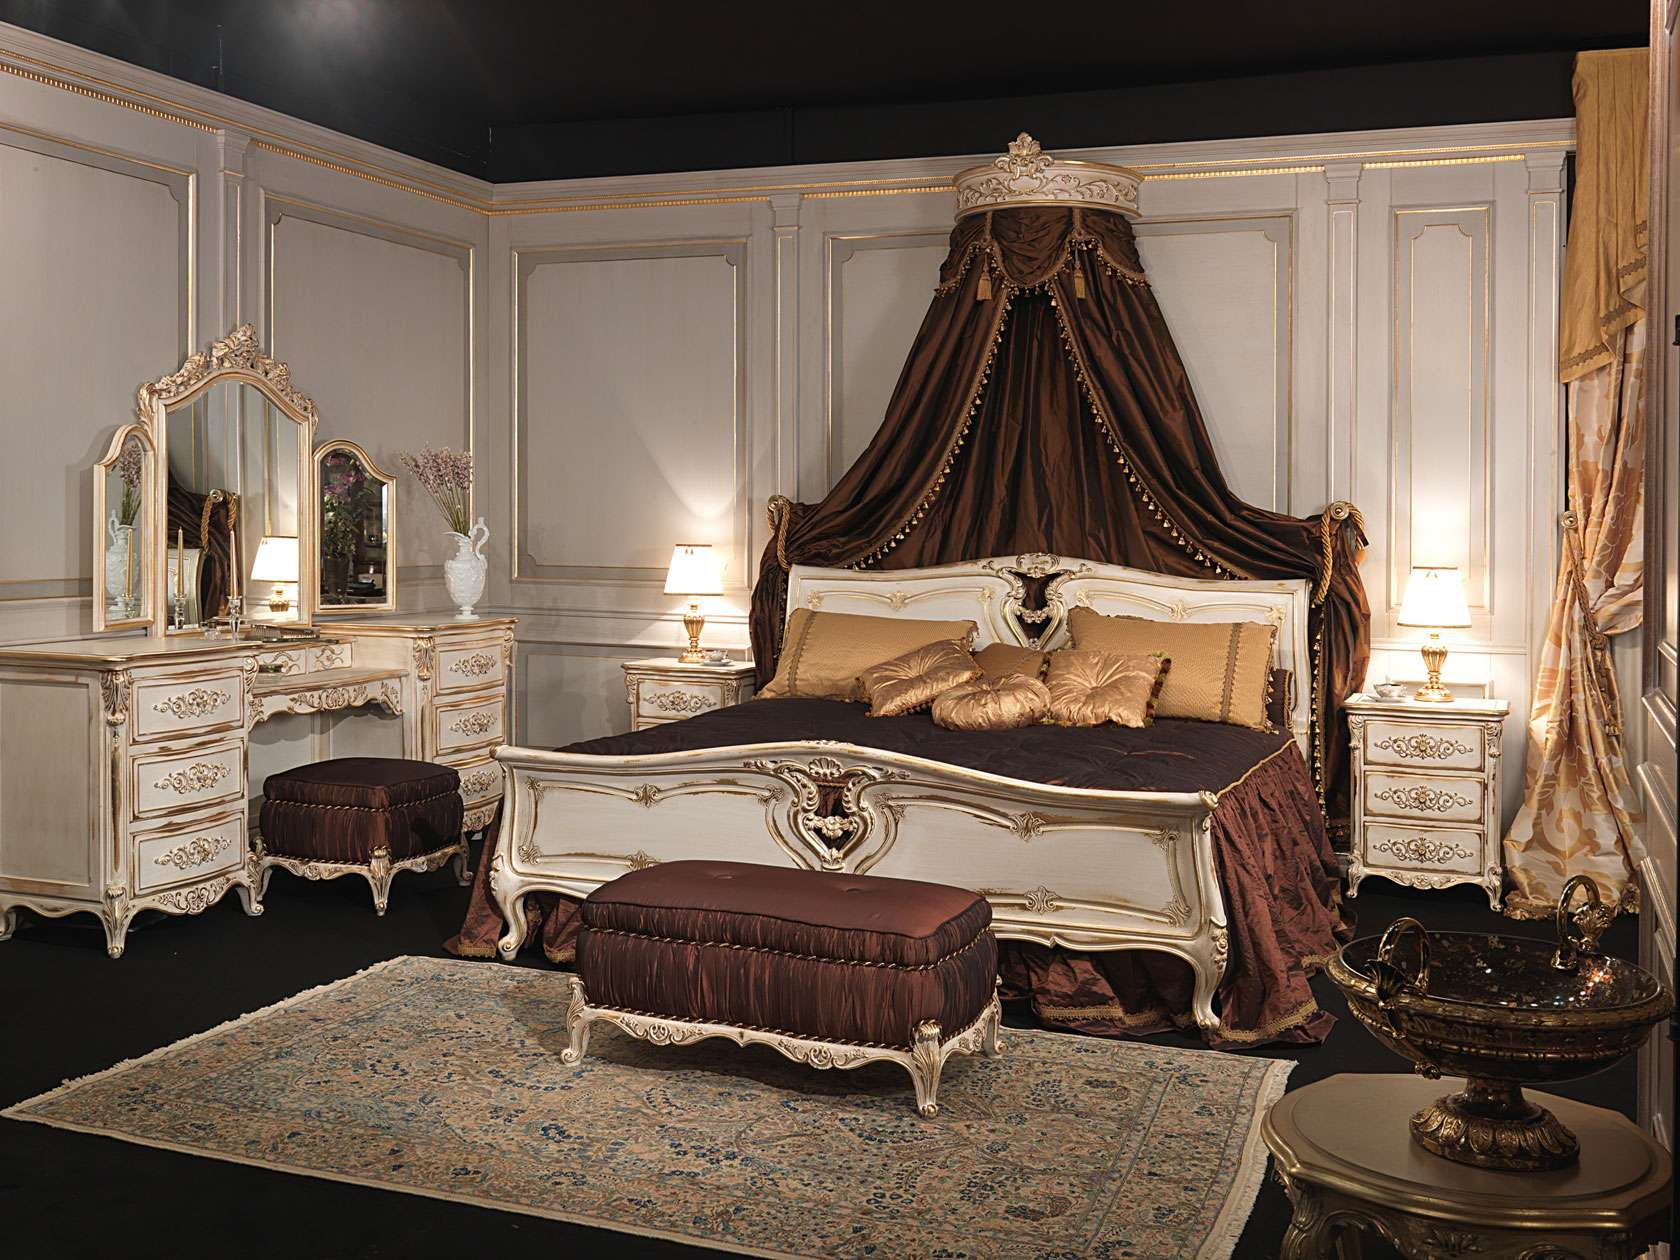 Letti A Baldacchino Per Cani : Classic louis xvi bedroom bed in carved wood with wall baldaquin